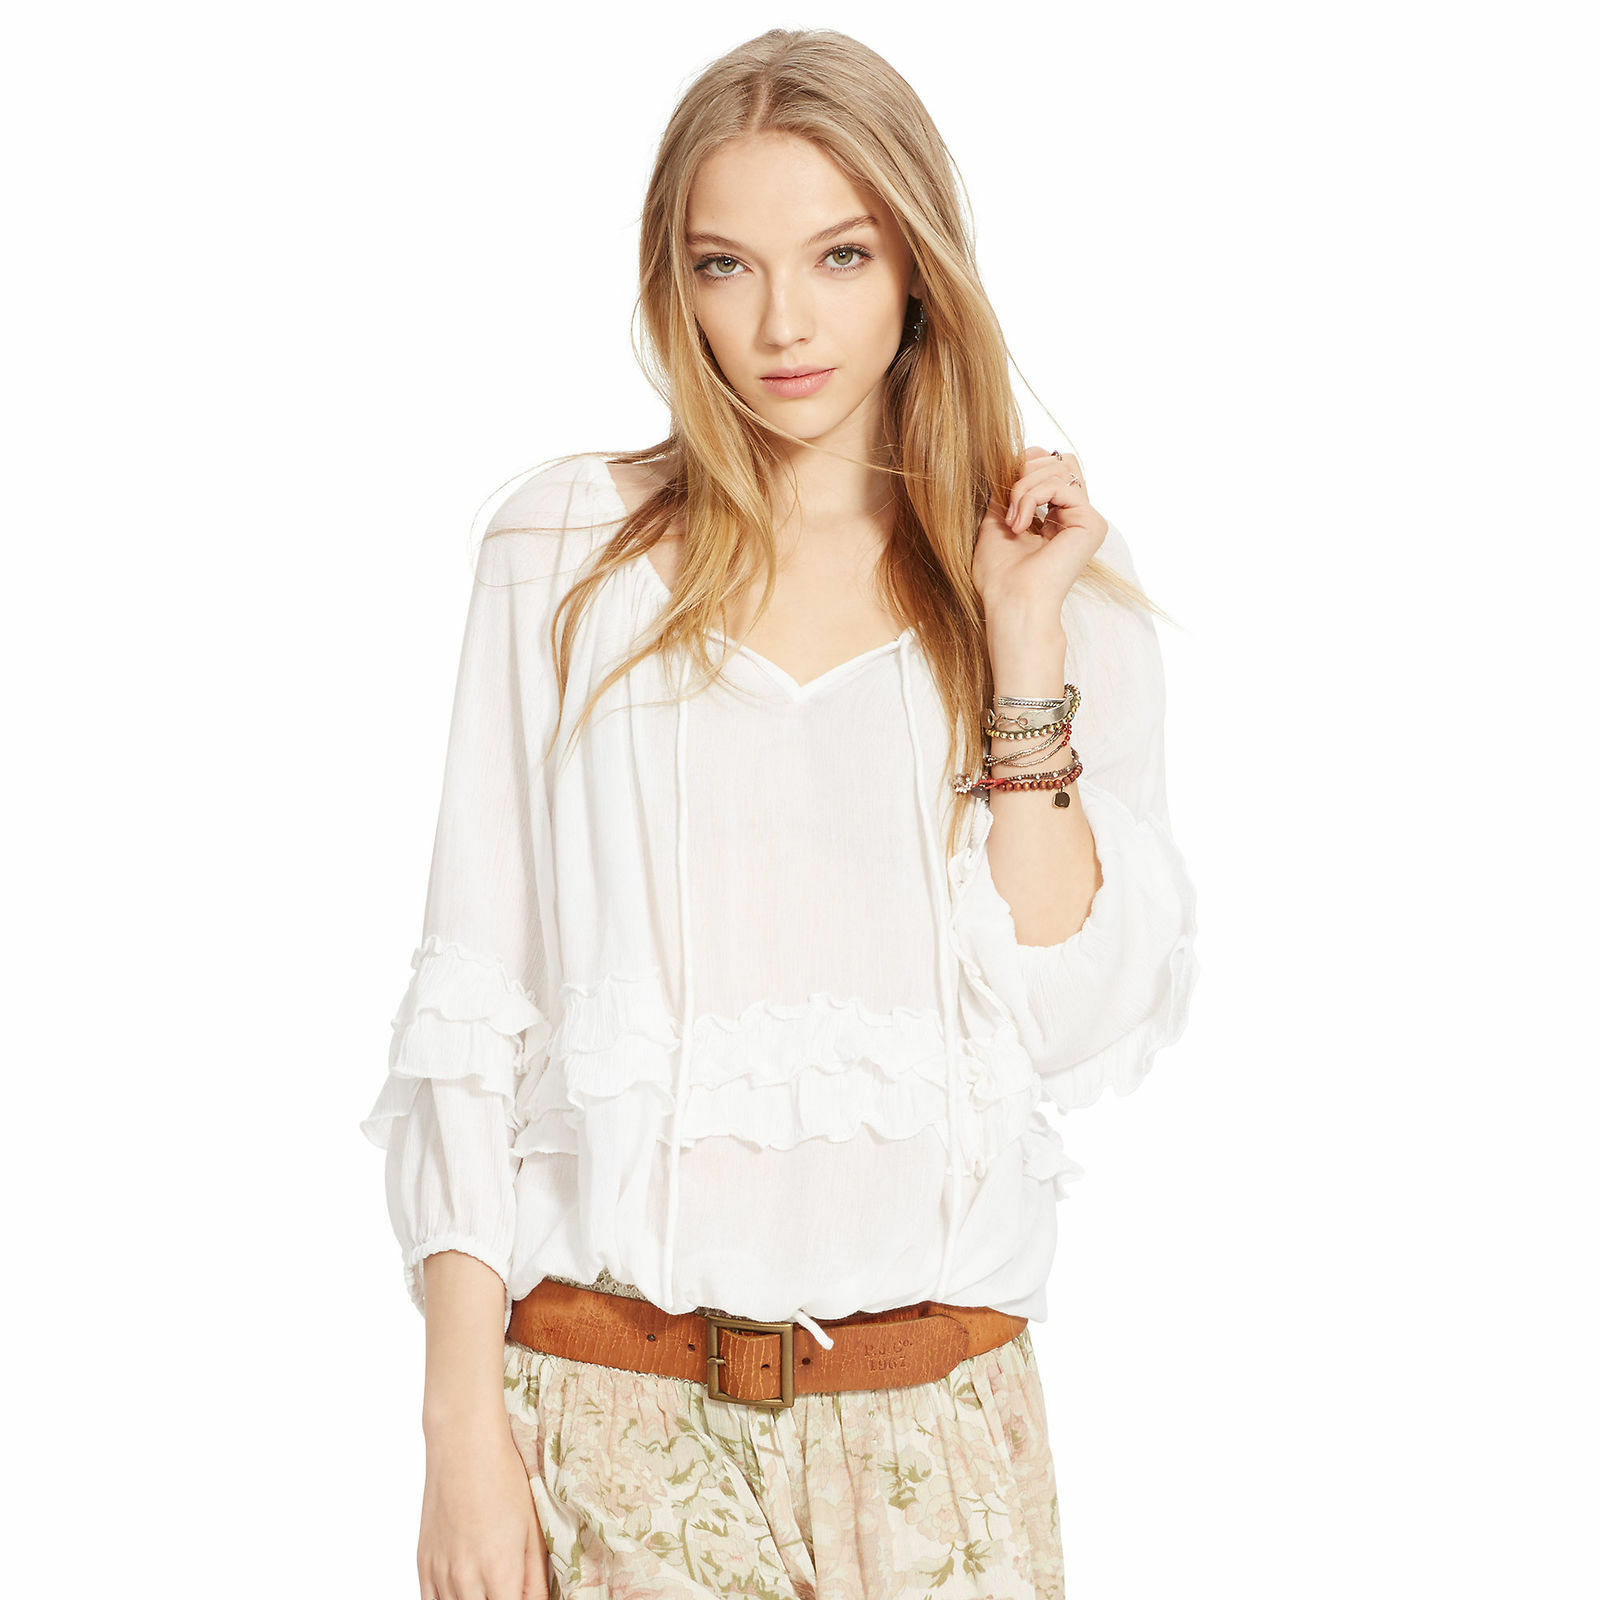 Denim & Supply Ralph Lauren Ruffled Boho Top Blouse in Ivory -  Small